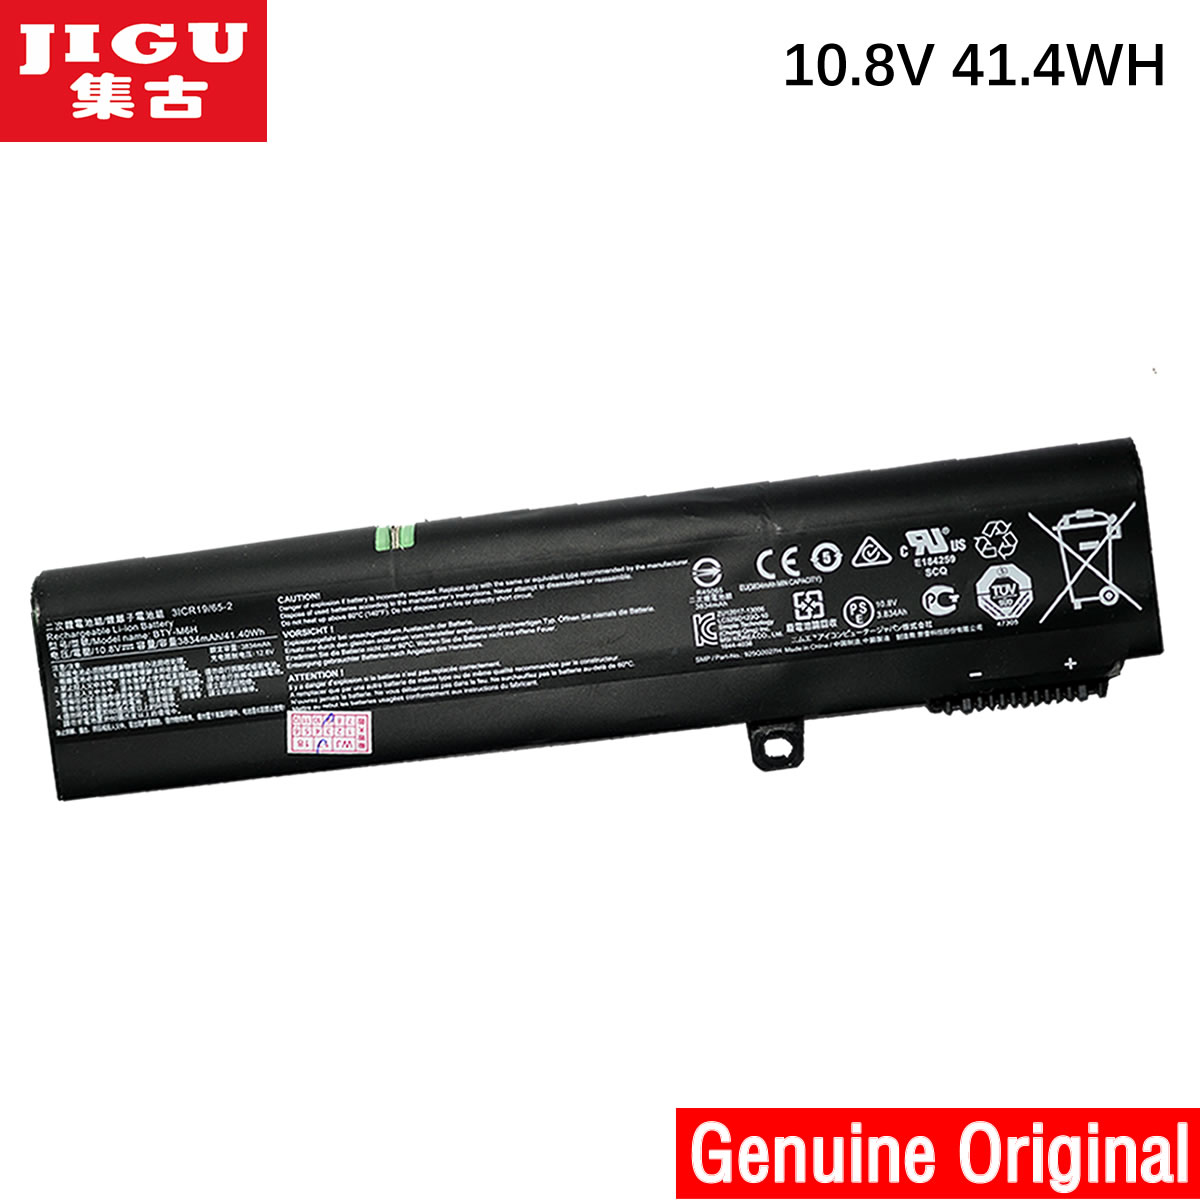 JIGU ORIGNAL Laptop Battery 3ICR19/65-2 3ICR19/66-2 BTY-M6H FOR MSI GL62M GL72 GP62 GP62MVR 0016J9-083 GE62 GE72